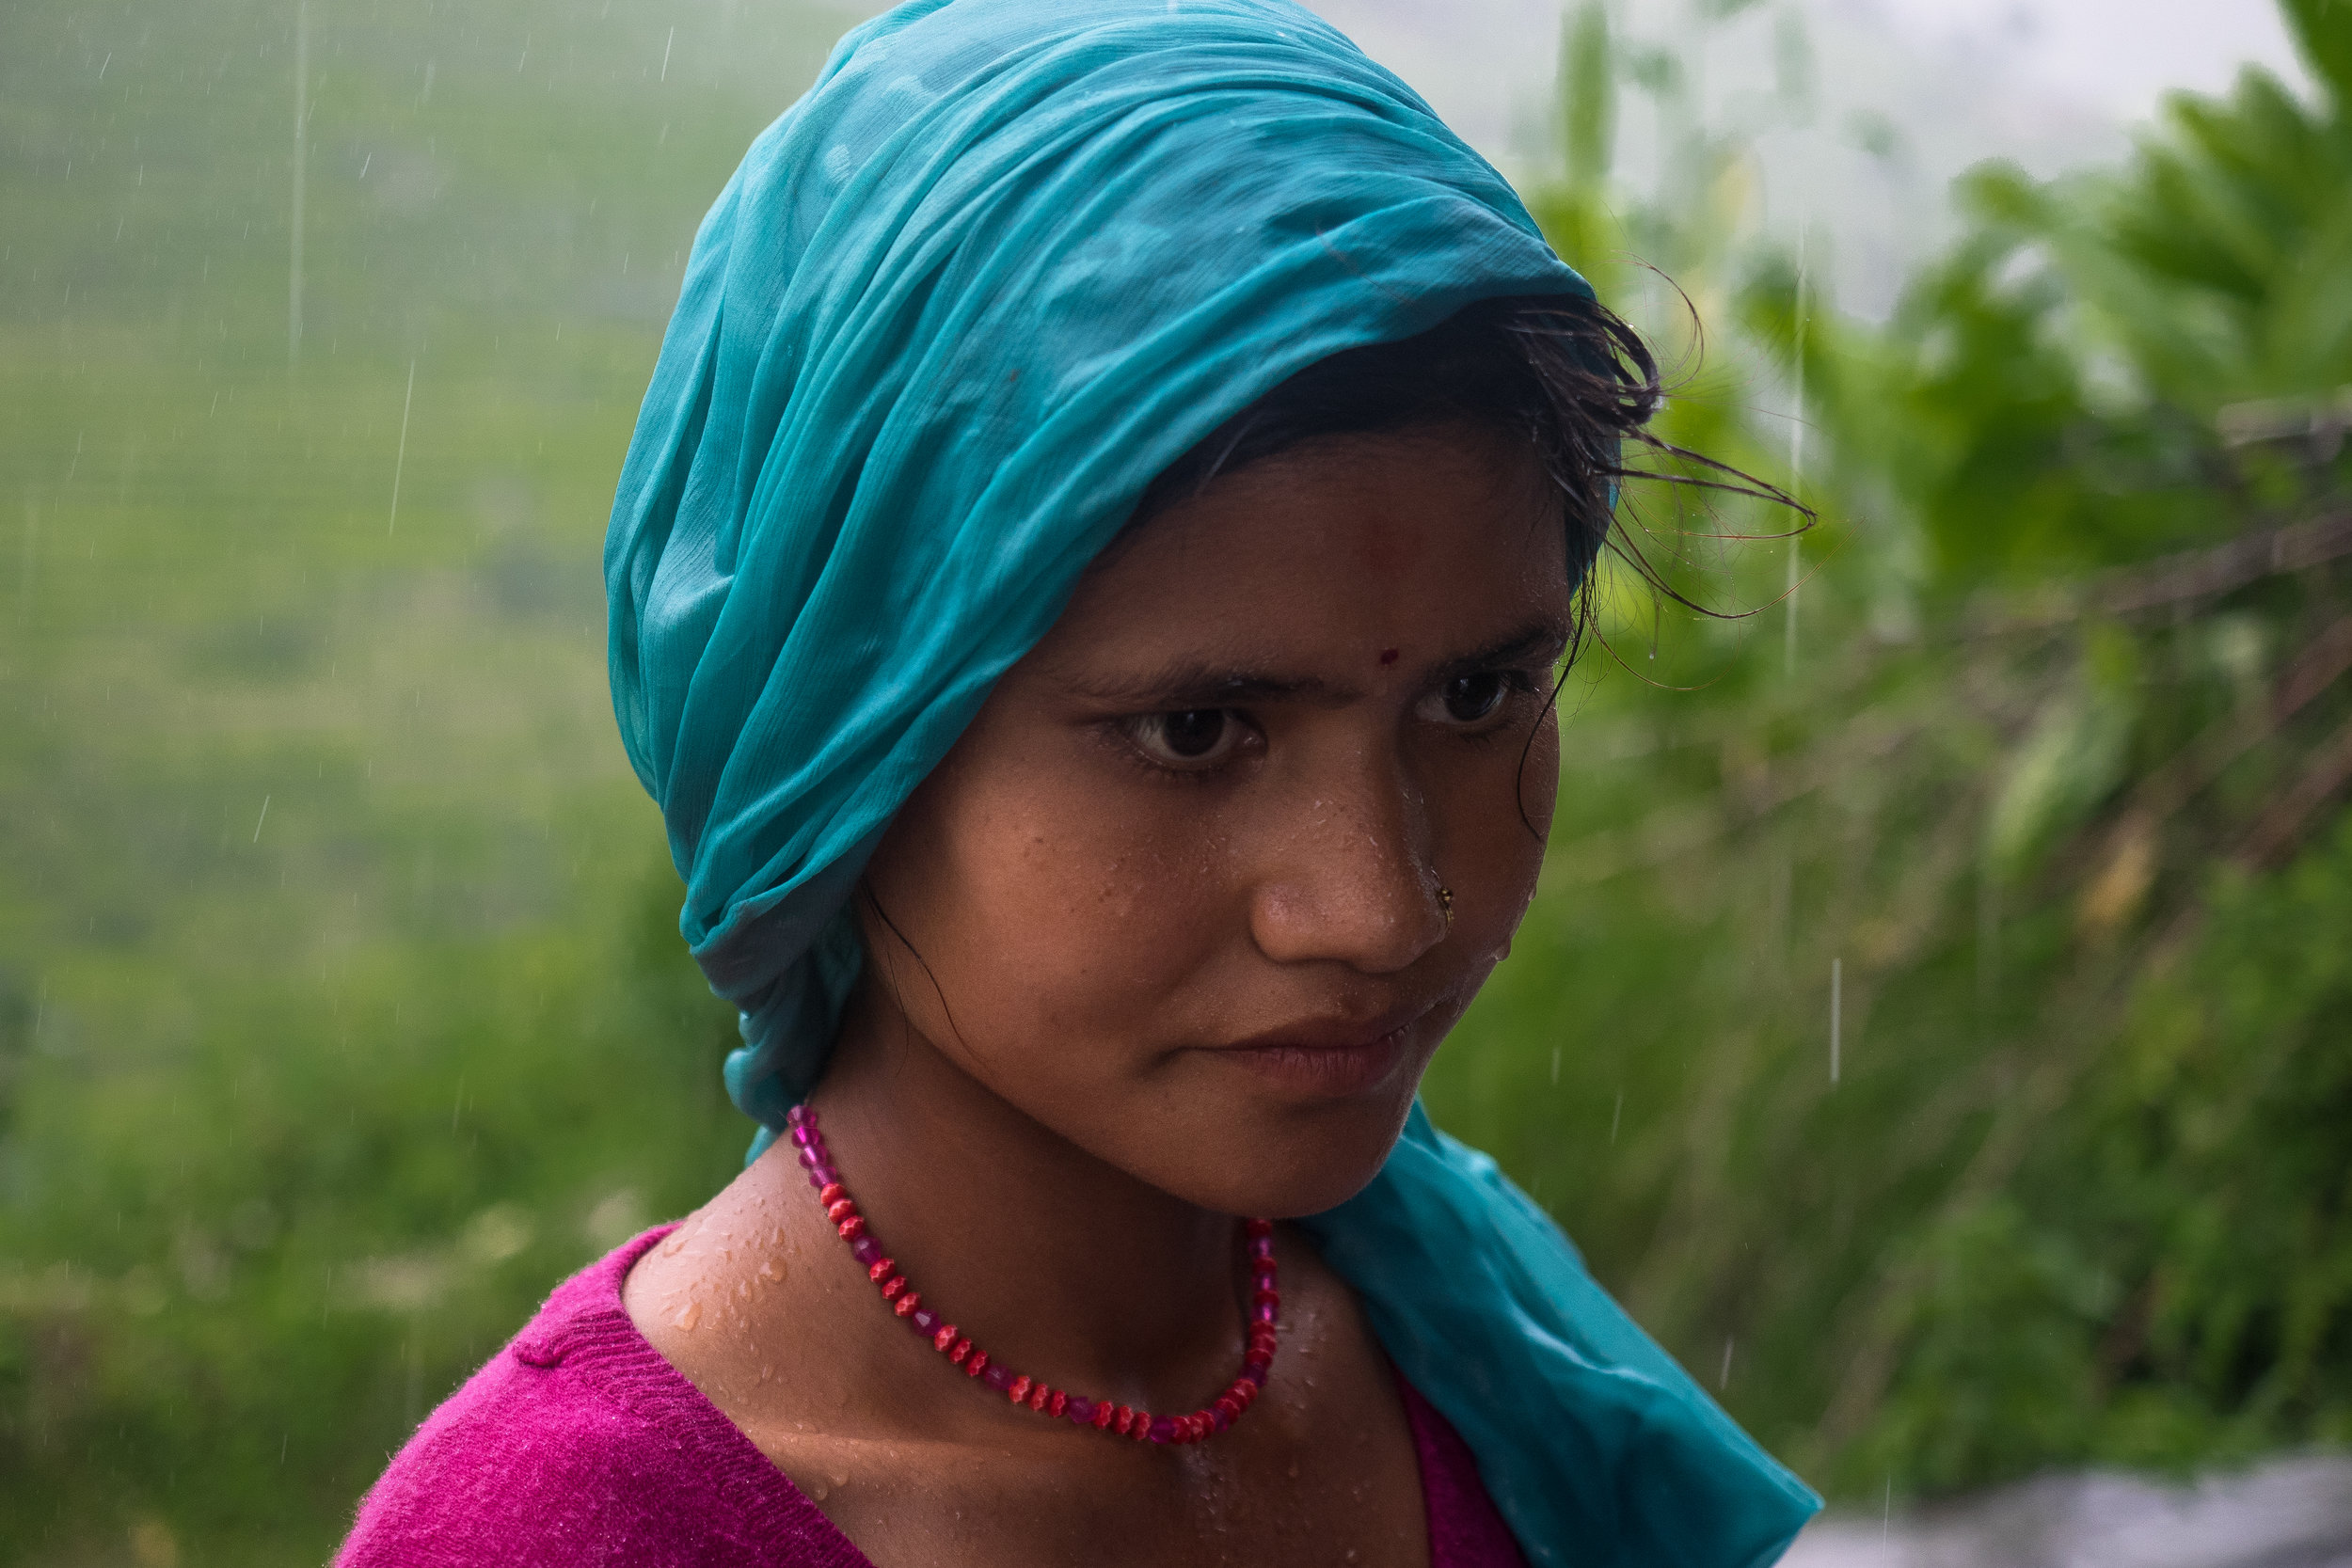 P8070944_Villager young woman portrait in Bajhang  - Aug 2017 - by Elina Tran.jpg